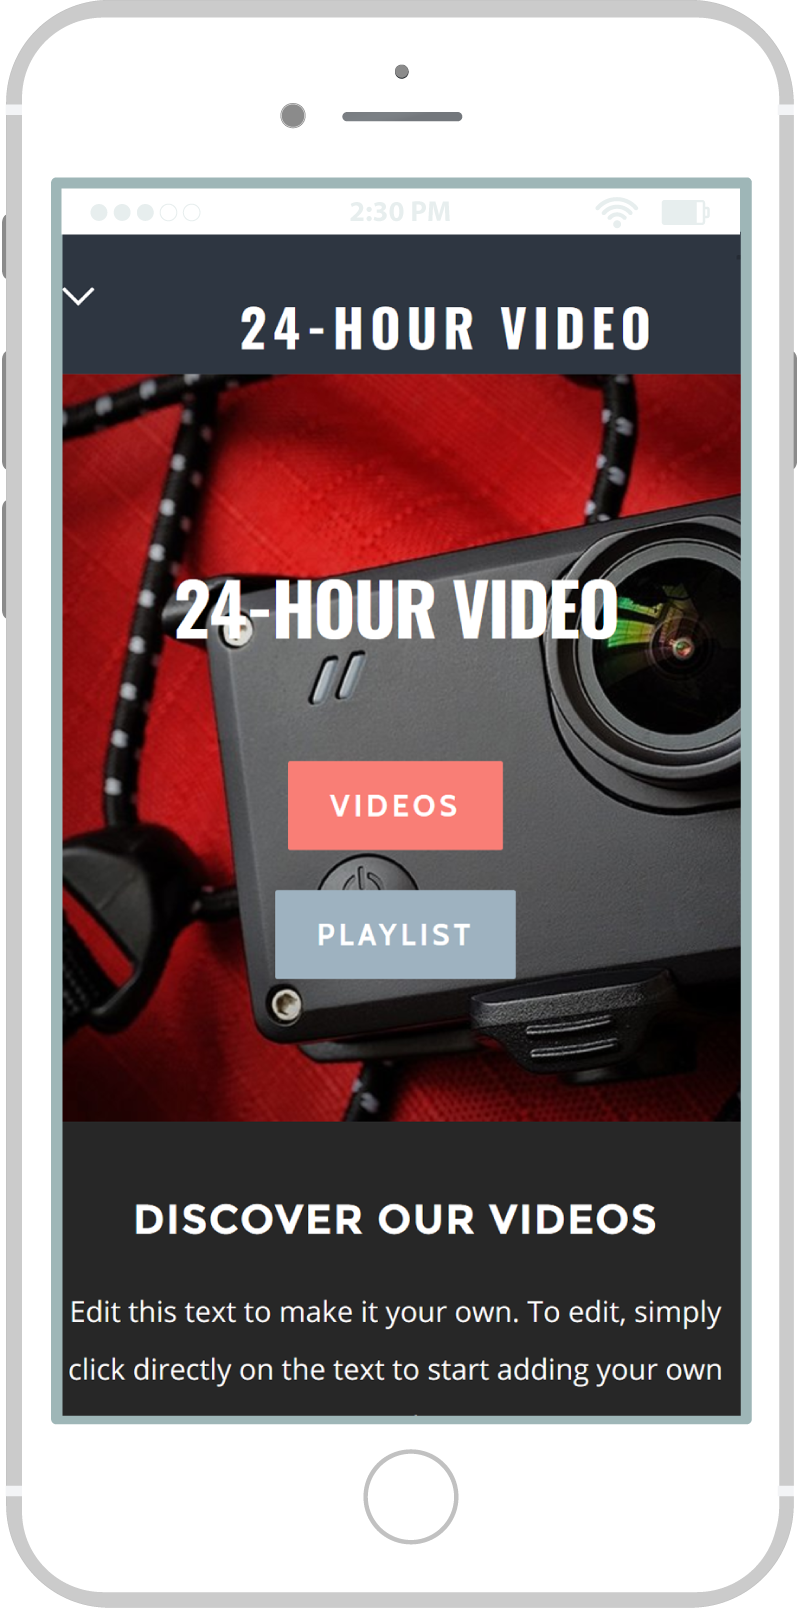 All-In-One Online Video Sales Website - 24 Hour Video Mobile View 1 Example